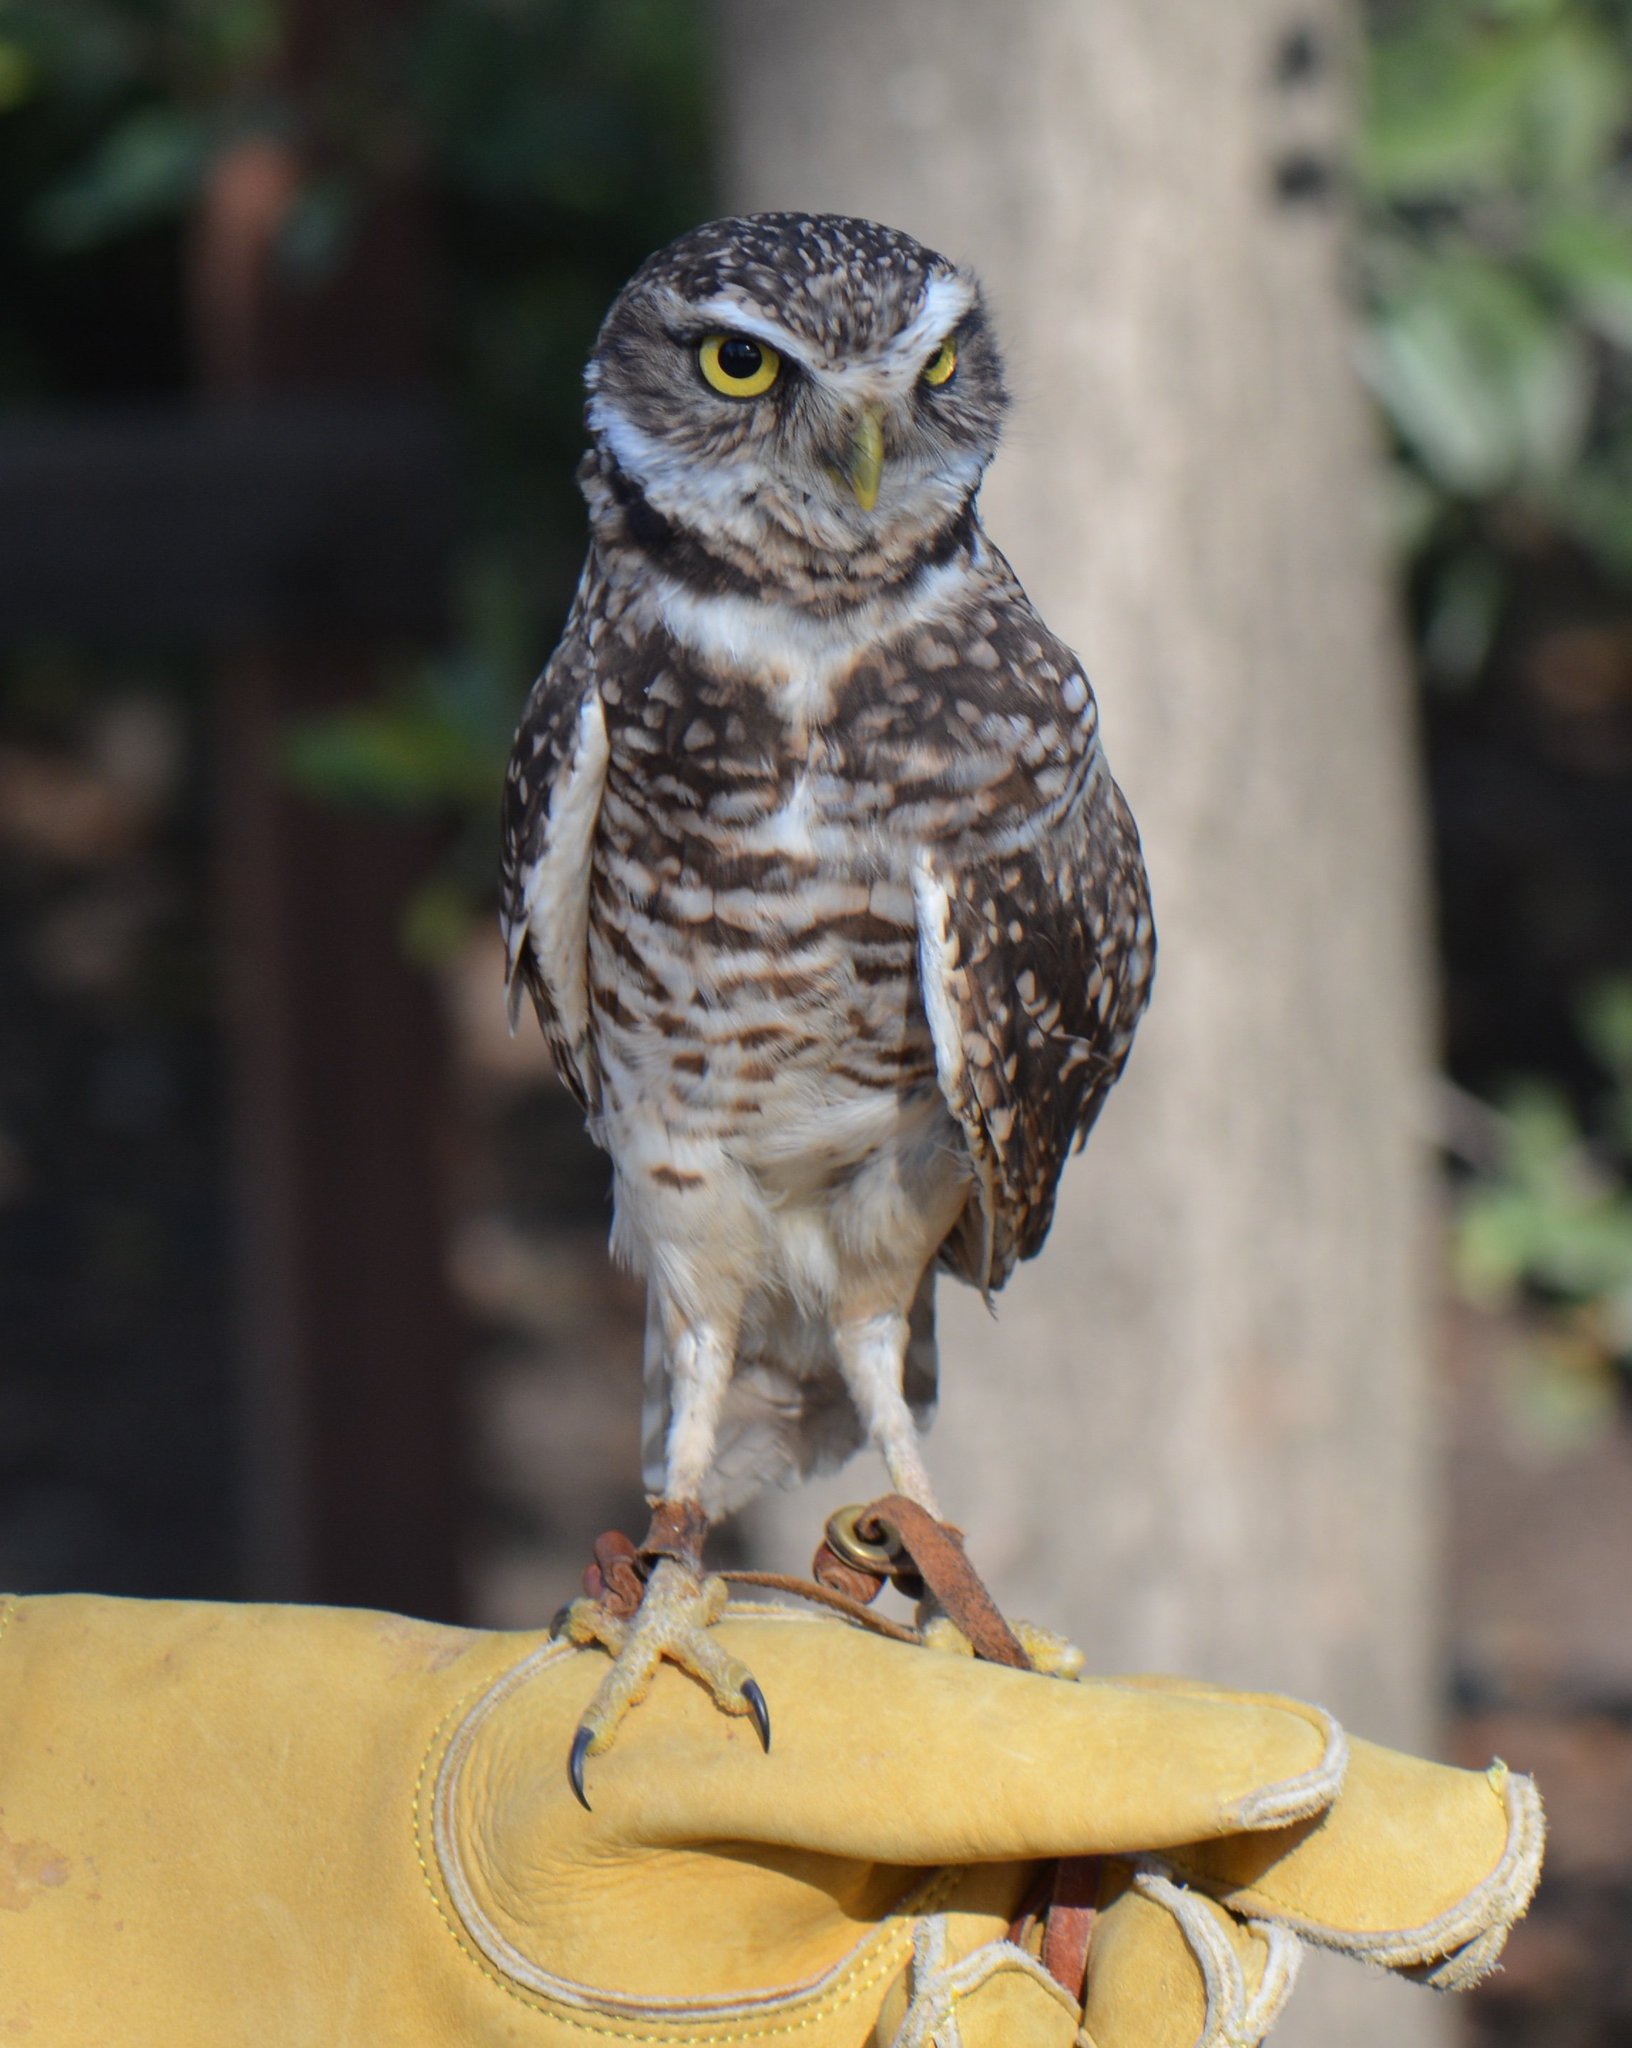 Today is #Superbowl vs #Superb_Owl challenge so posting some of my #Superb_Owls - here is #8 - burrowing owl at @CalRaptorCenter https://t.co/3m7TnBDhyN